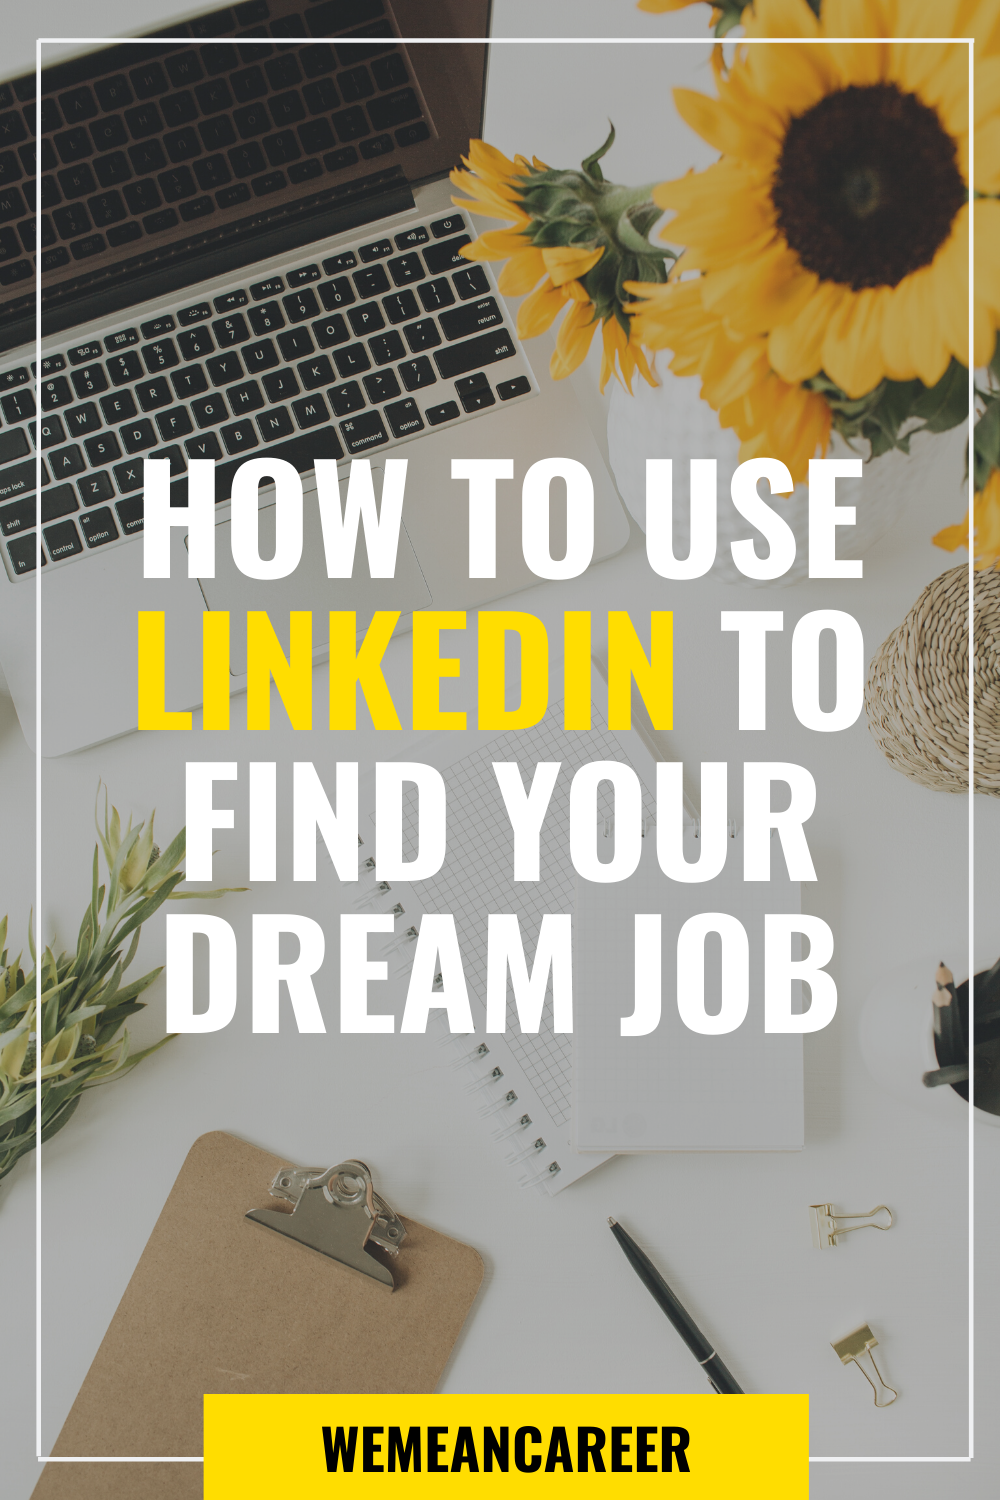 Are You Looking For Linkedin Tips Do You Want To Know How To Use Linkedin Effectively During Your Job Search A Successfu Linkedin Job Search Job Linkedin Job